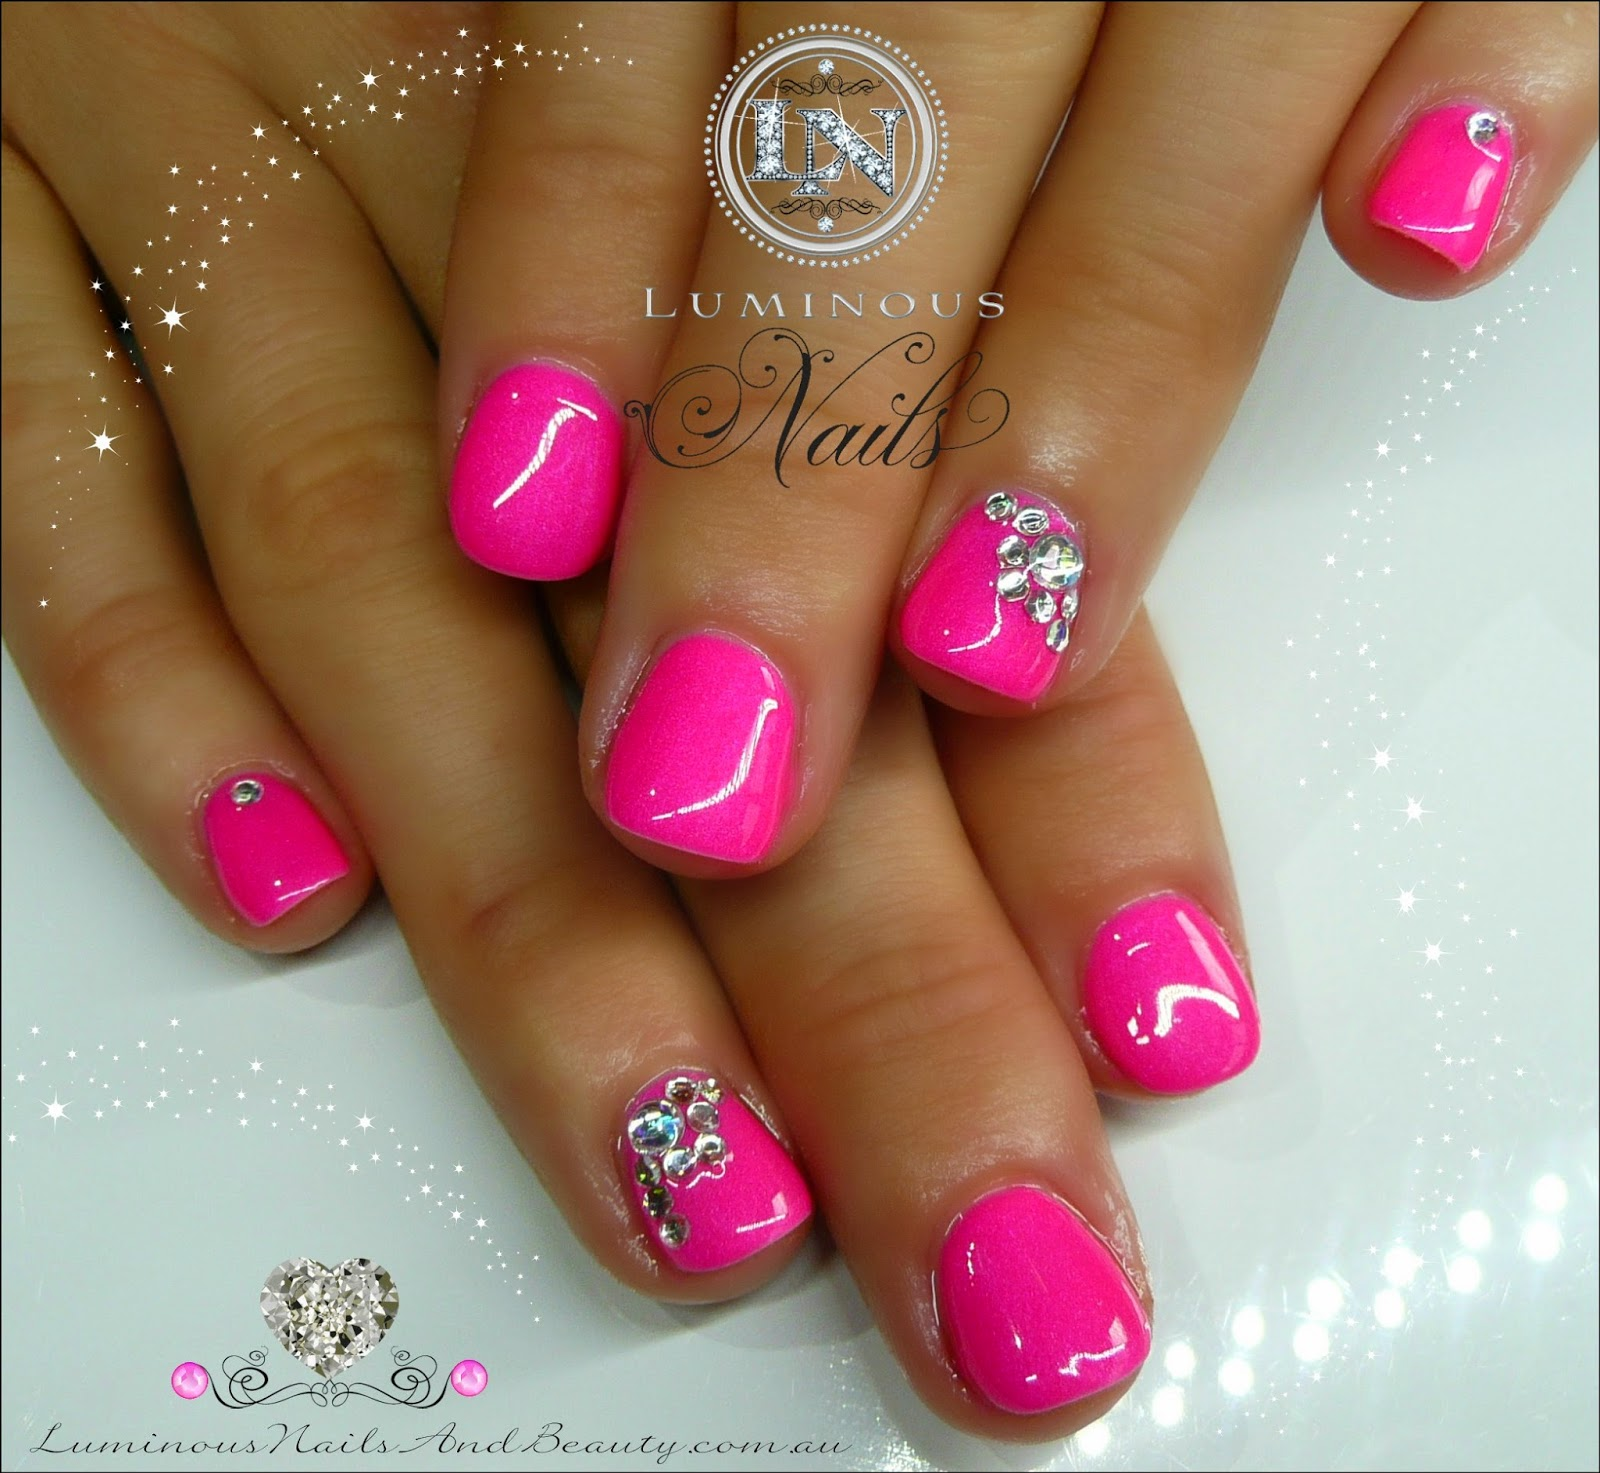 Crystal Gel Nail Video: Cute Hot Pink Gel Over Natural Nails With A Little Bling